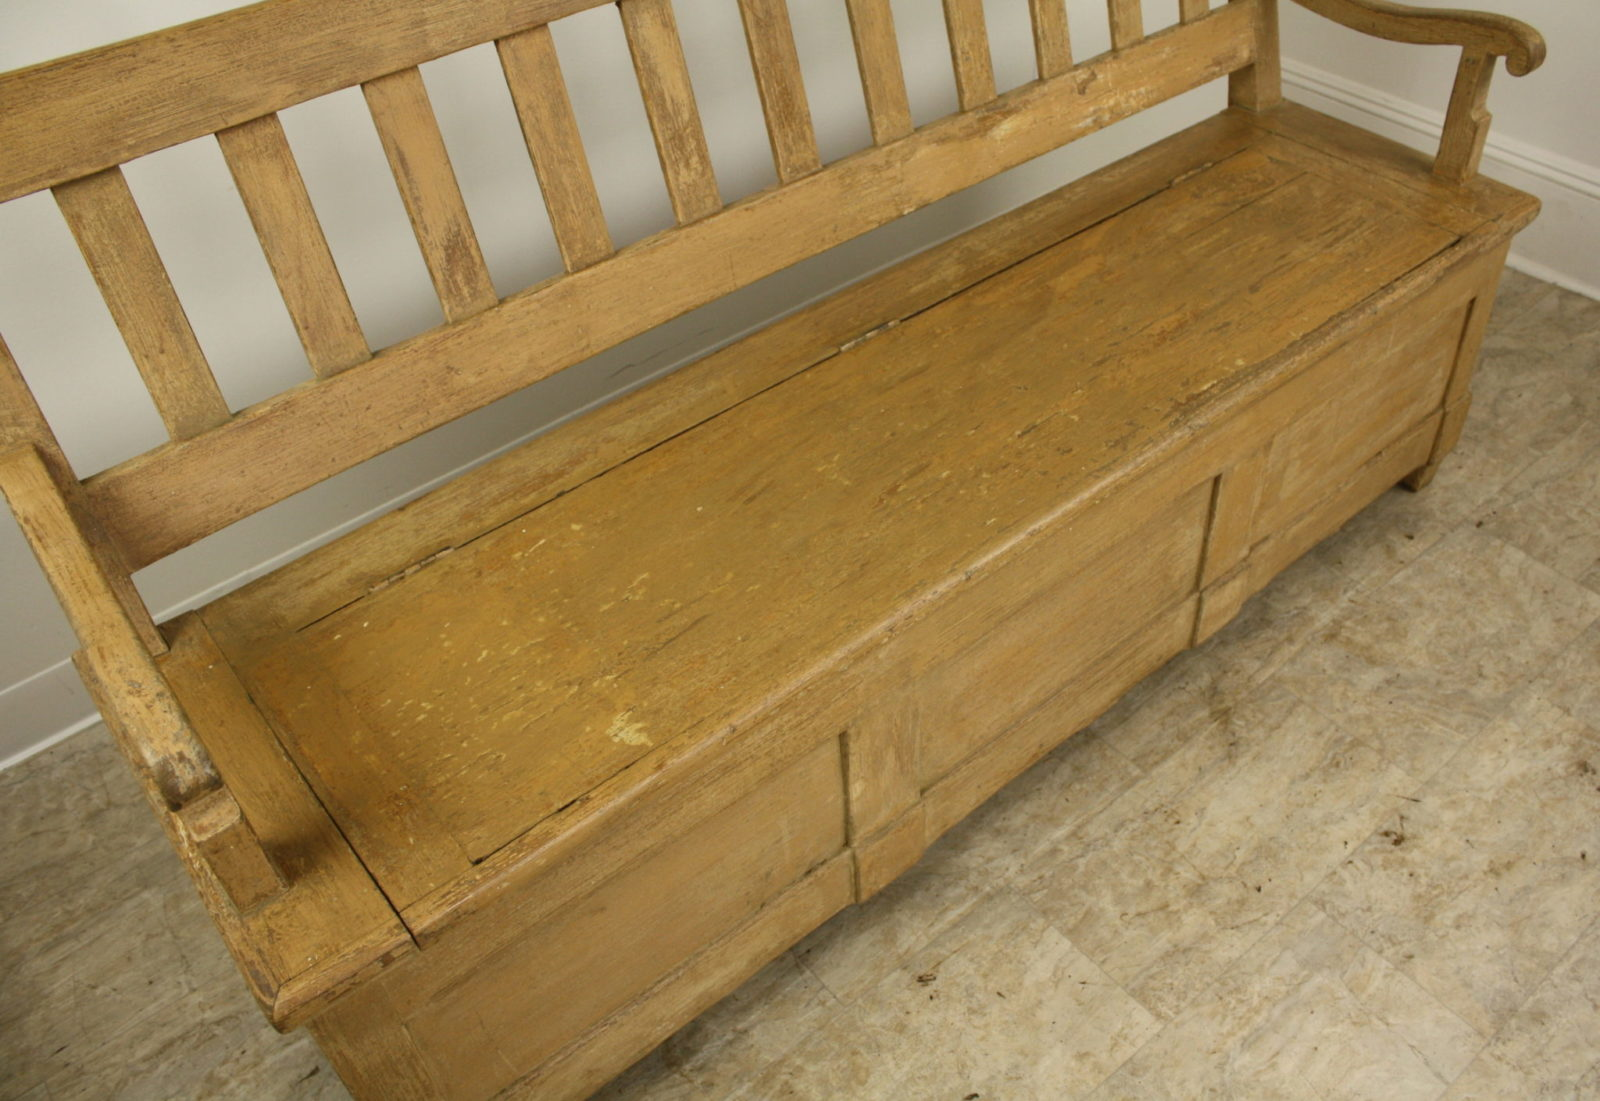 Antique Painted Mixed Wood Settle Briggs House Antiques